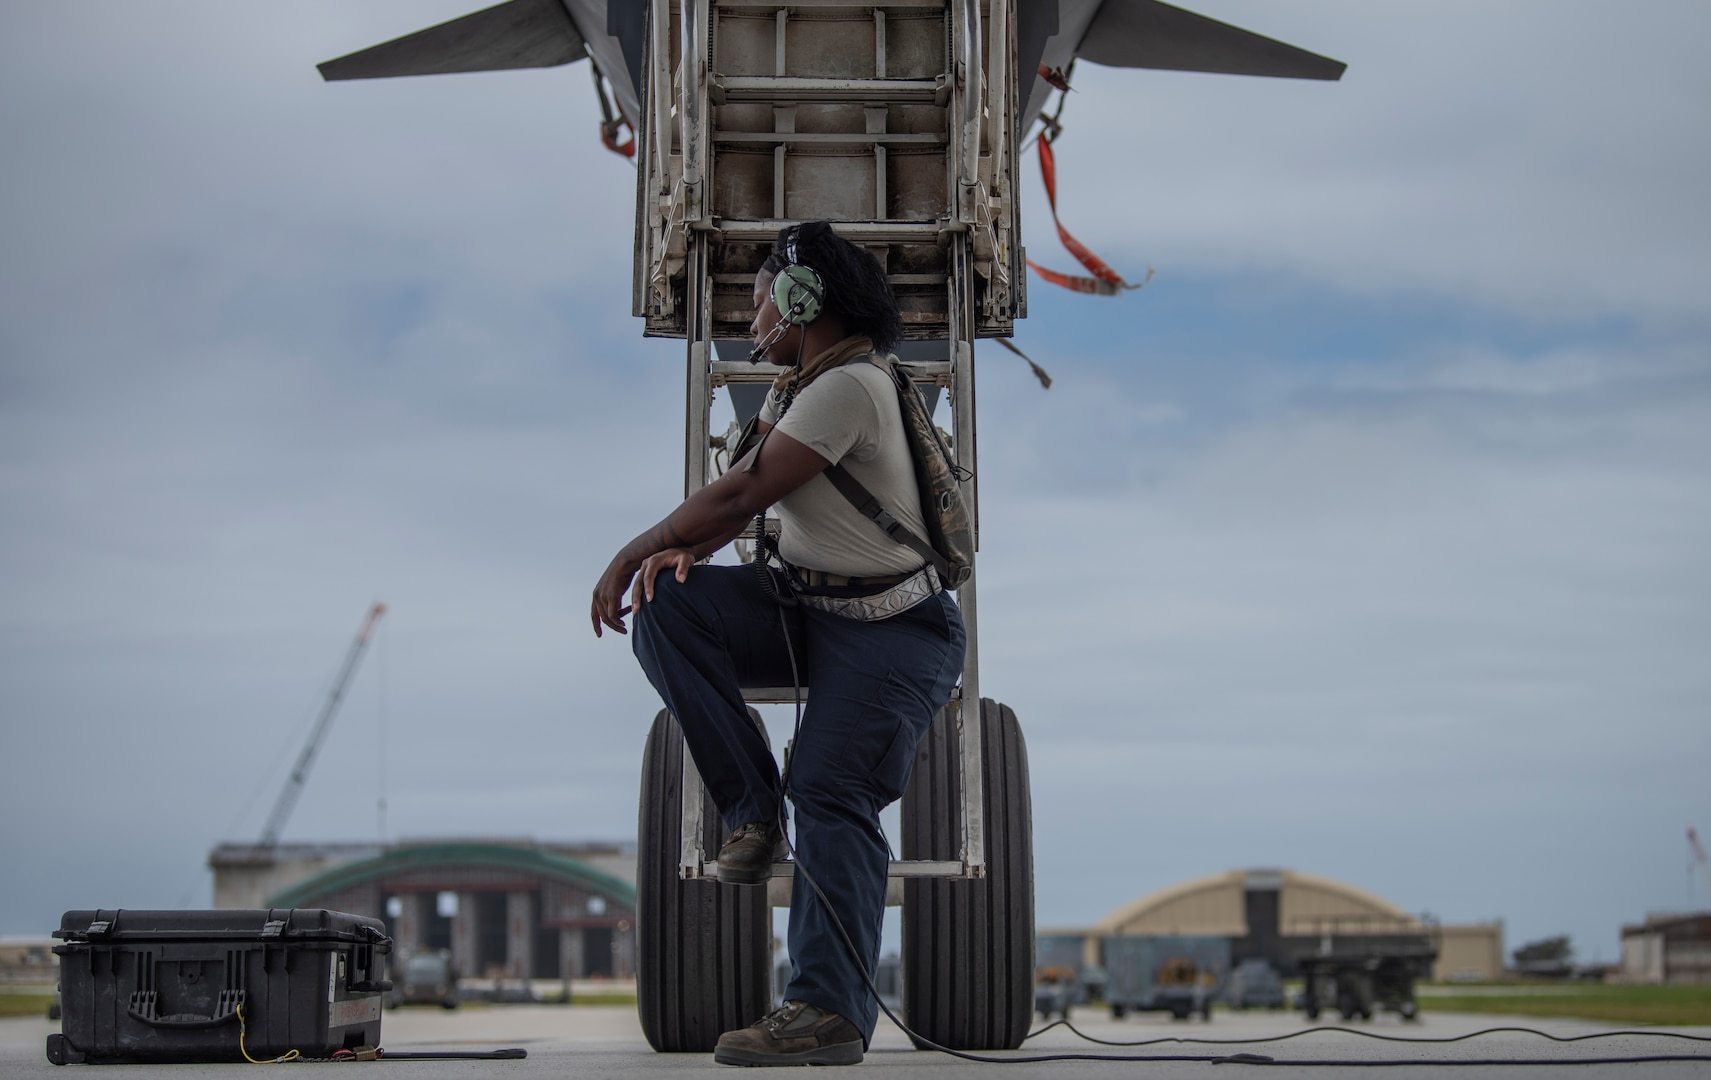 Senior Airman Raisa Ward, 9th Expeditionary Bomb Squadron Aircraft Maintenance Unit avionics technician, sits under a 9th EBS B-1B Lancer at Andersen Air Force Base, Guam, May 5, 2020, after completing maintenance on the aircraft. The 9th EBS, and other units assigned to the 7th Bomb Wing of Dyess Air Force Base, Texas, are deployed to Guam as part of a Bomber Task Force. BTFs contribute to joint force lethality, assure allies and partners, and deter aggression in the Indo-Pacific. (U.S. Air Force photo by Senior Airman River Bruce)